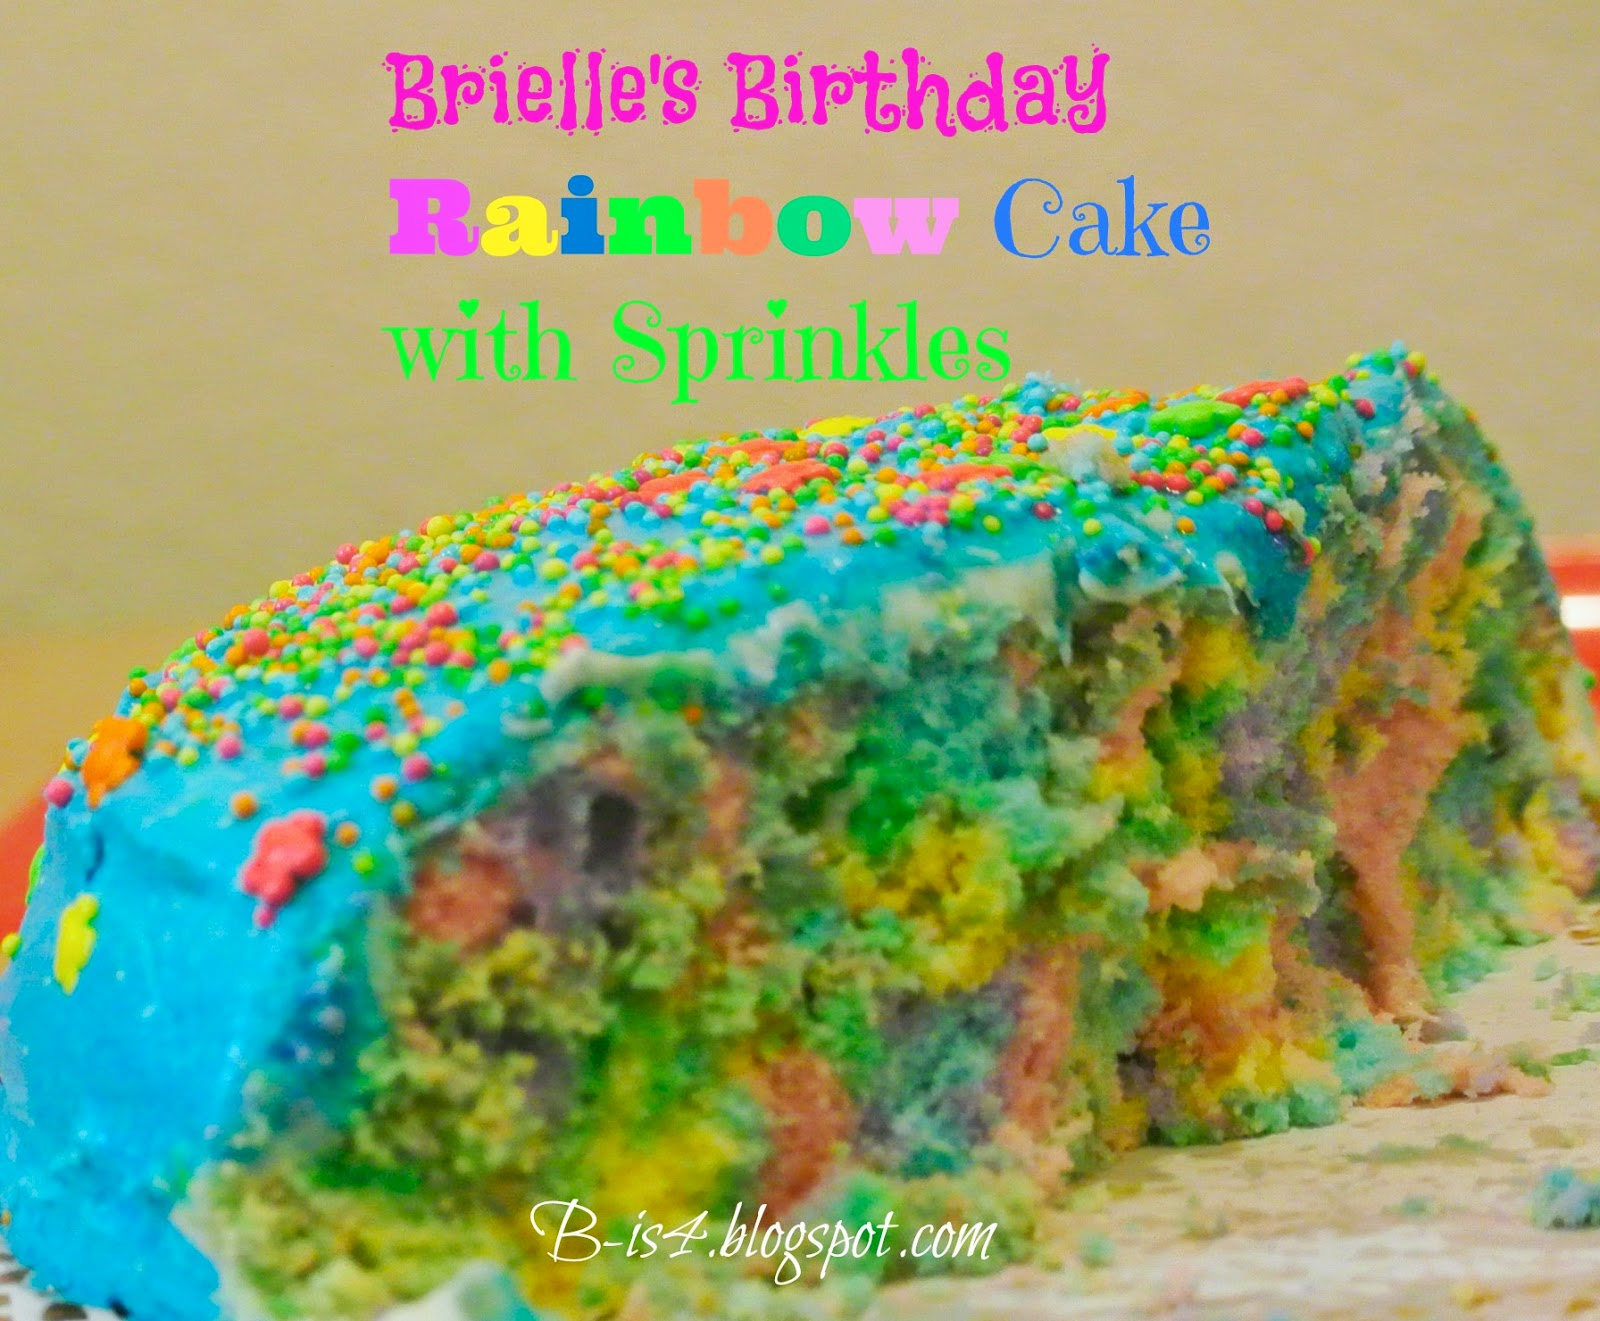 http://b-is4.blogspot.com/2014/10/birthday-rainbow-cake-with-sprinkles.html